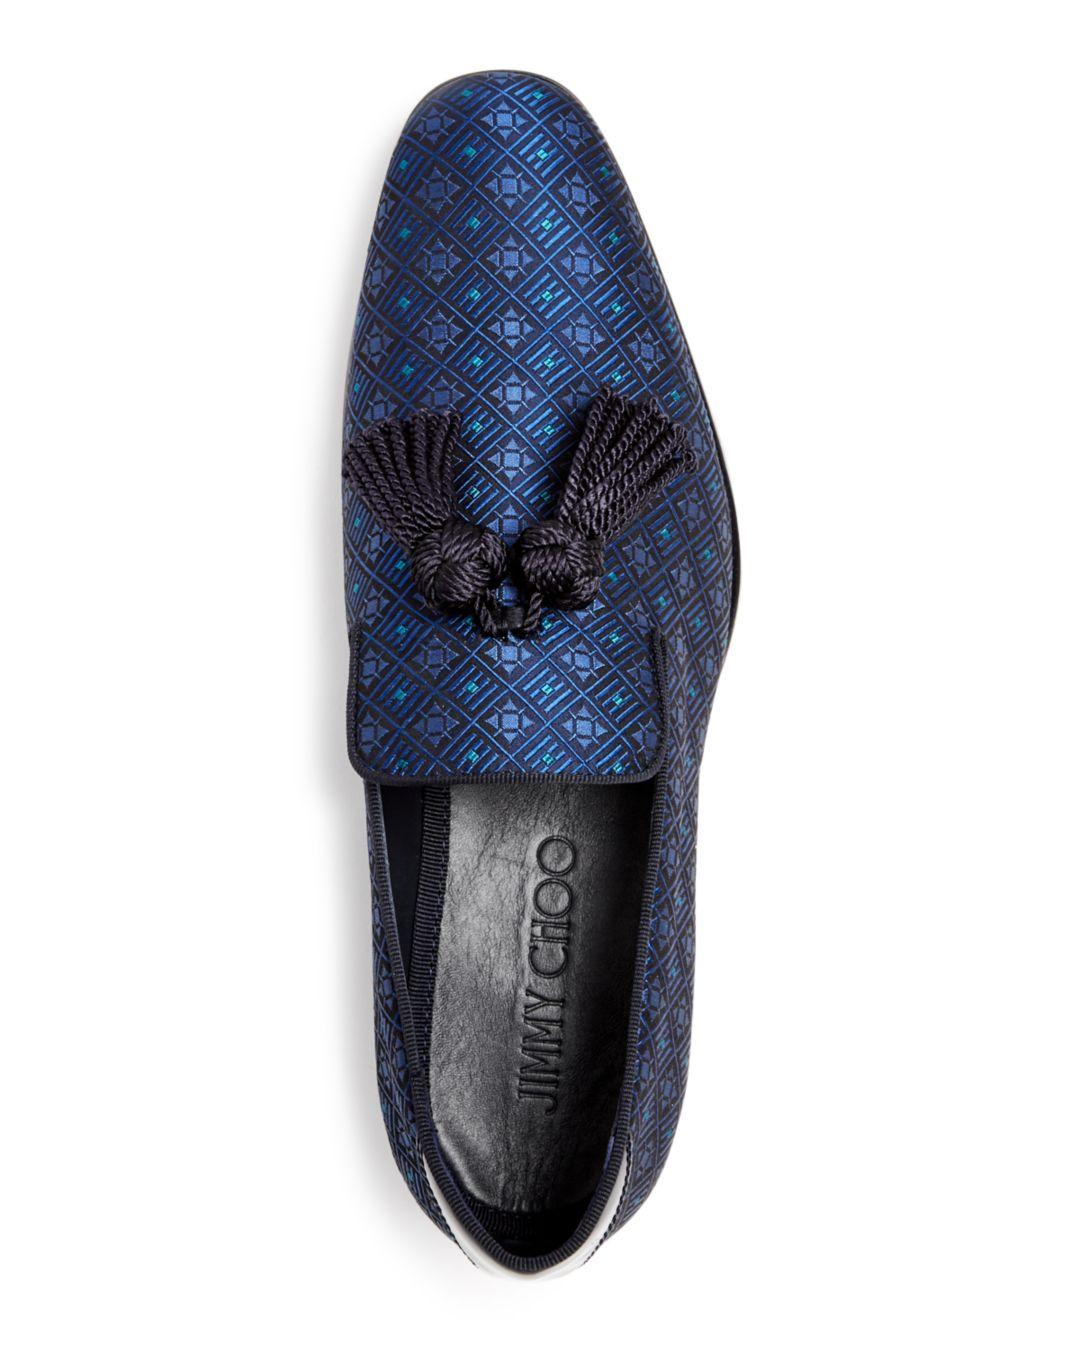 431c2b061de Lyst - Jimmy Choo Men s Foxley Jacquard Smoking Slippers in Blue for Men